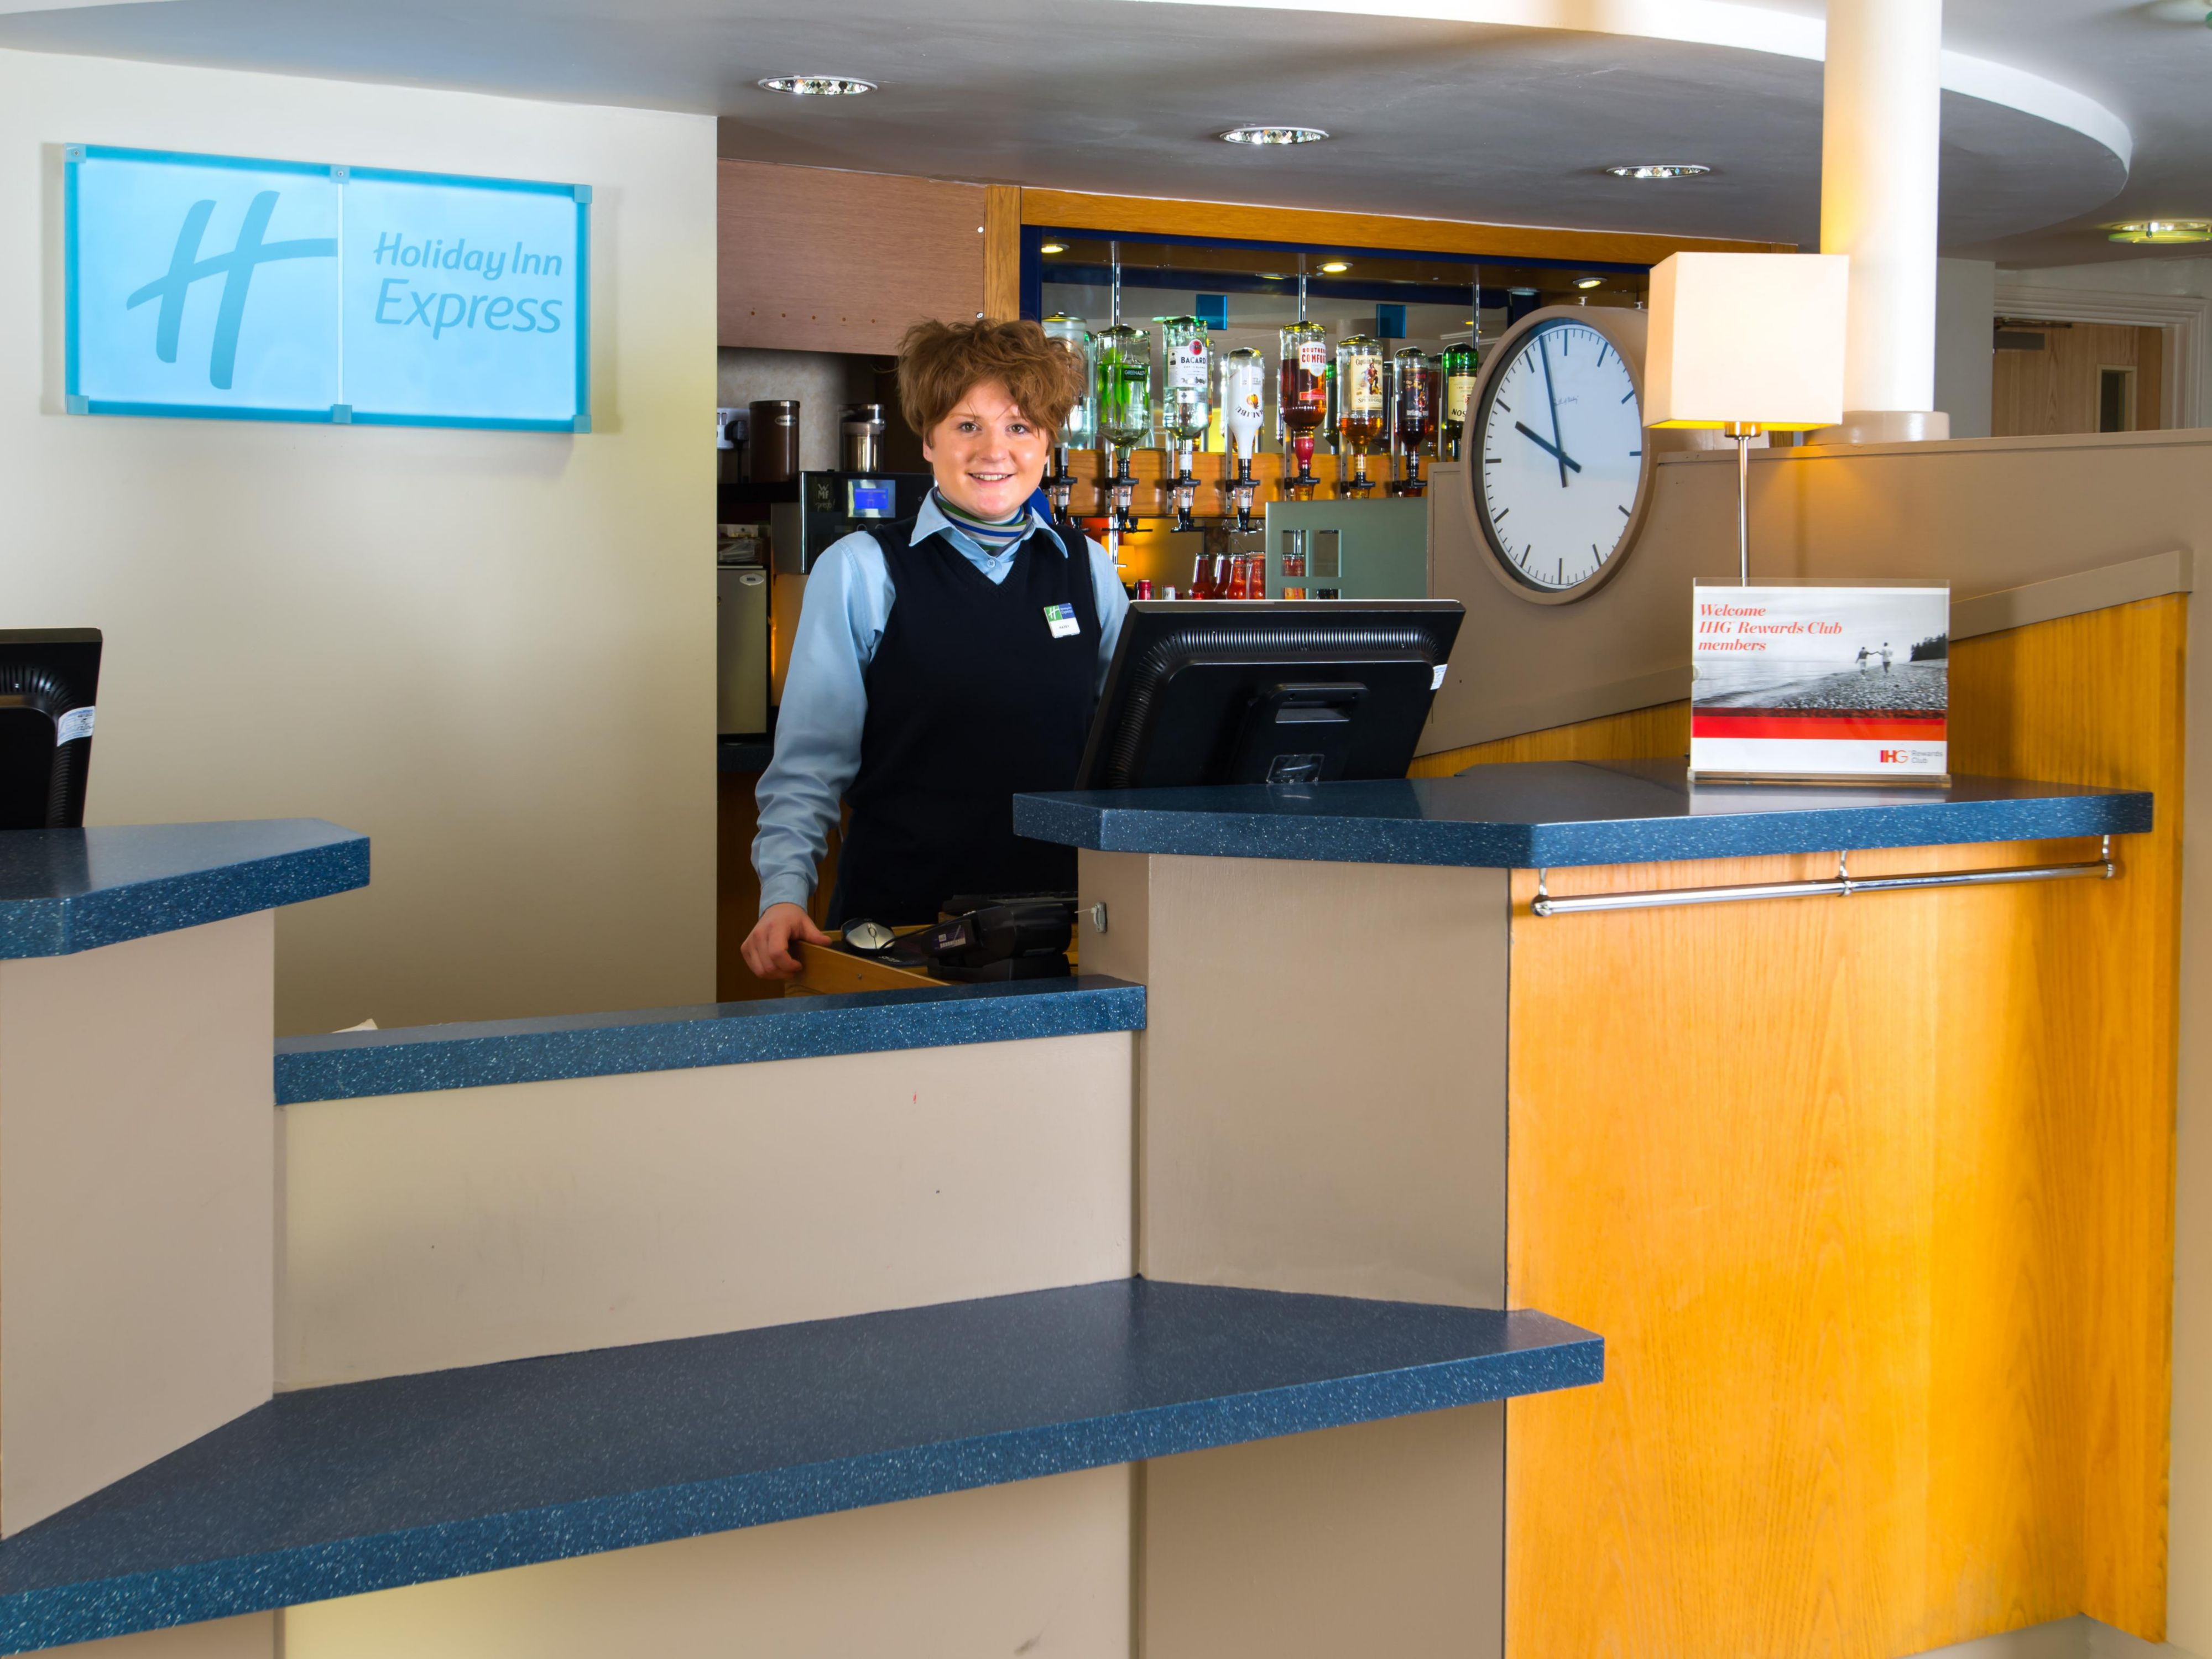 Our friendly Reception team are here for anything you need